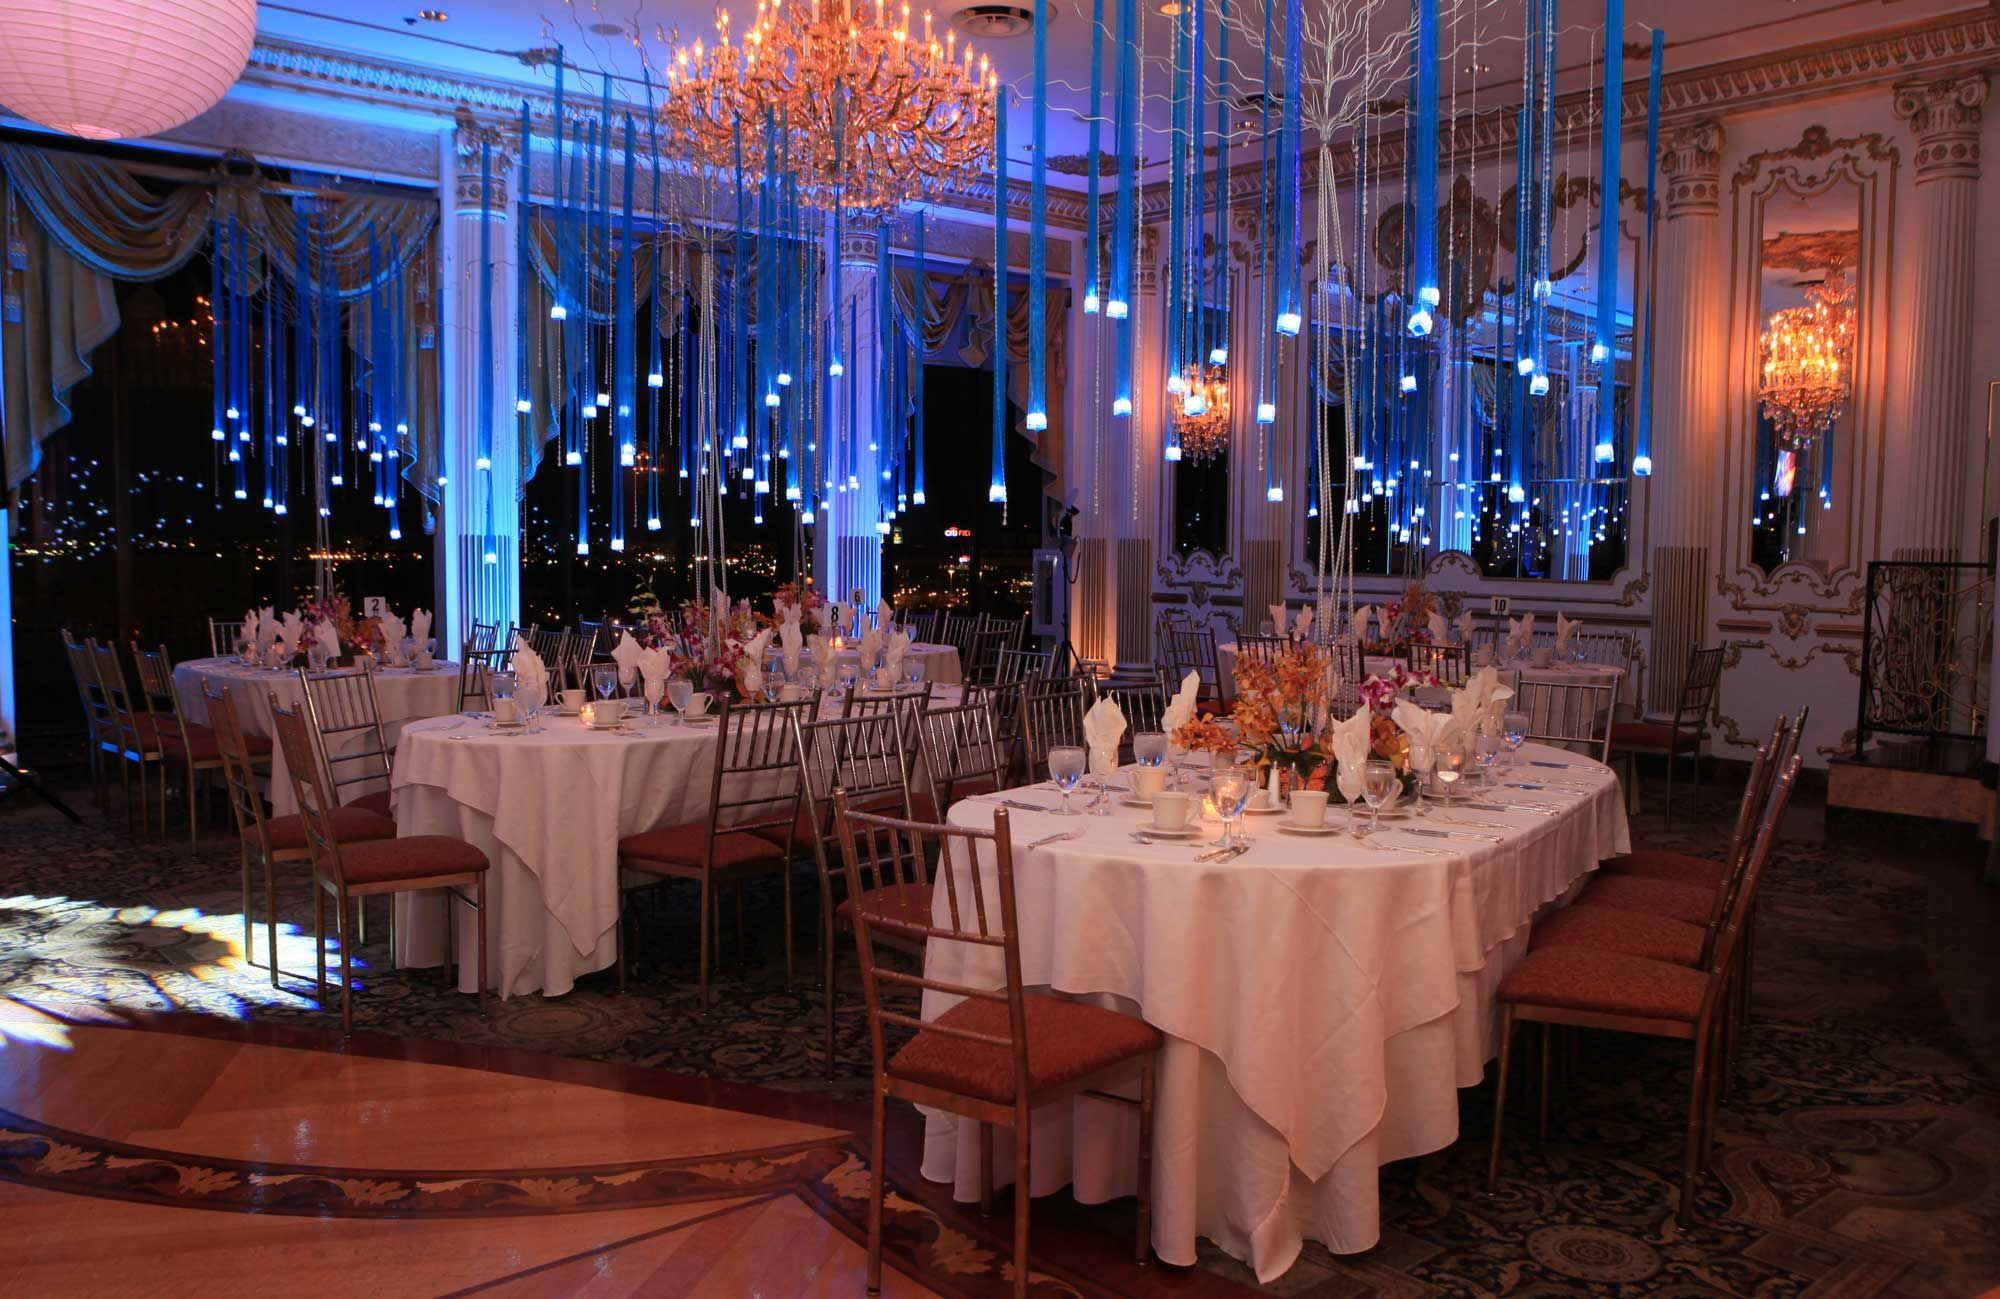 best wedding reception halls in nyc%0A New York Wedding Venue   Terrace On The Park    terrace on the park    Pinterest   Event venues  Wedding venues and Bridezilla